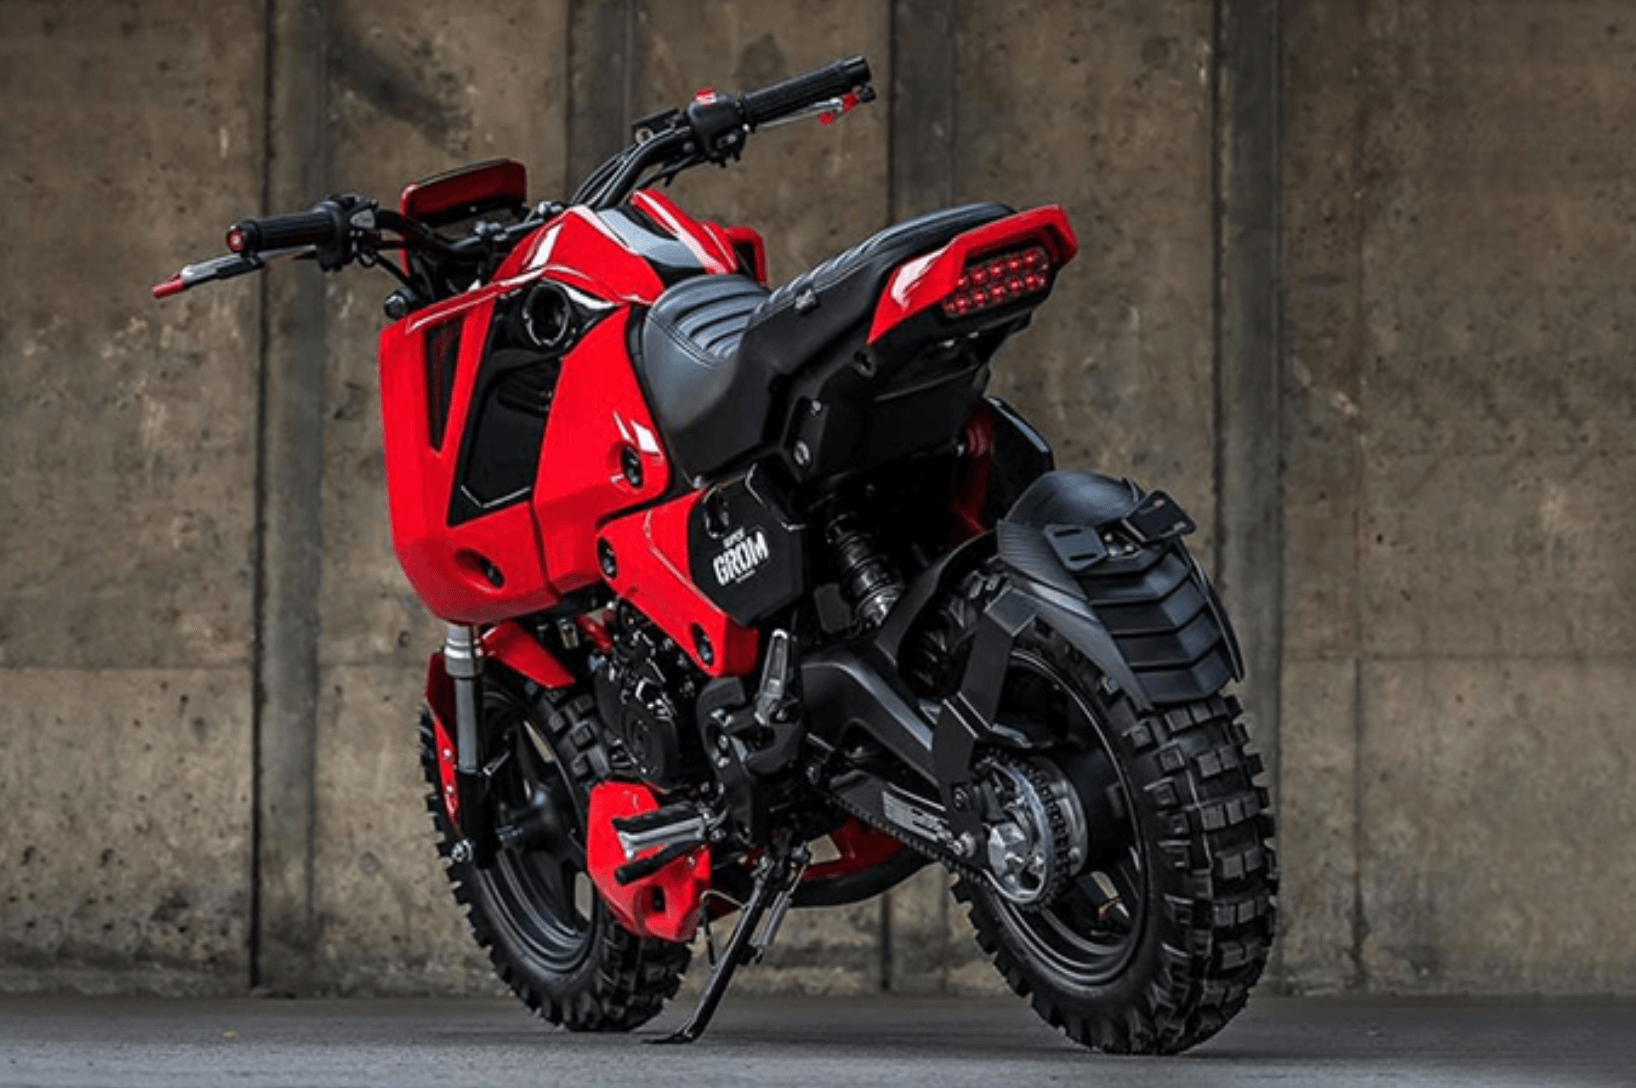 K-SPEED SUPER GROM MOTORSİKLET bilgi